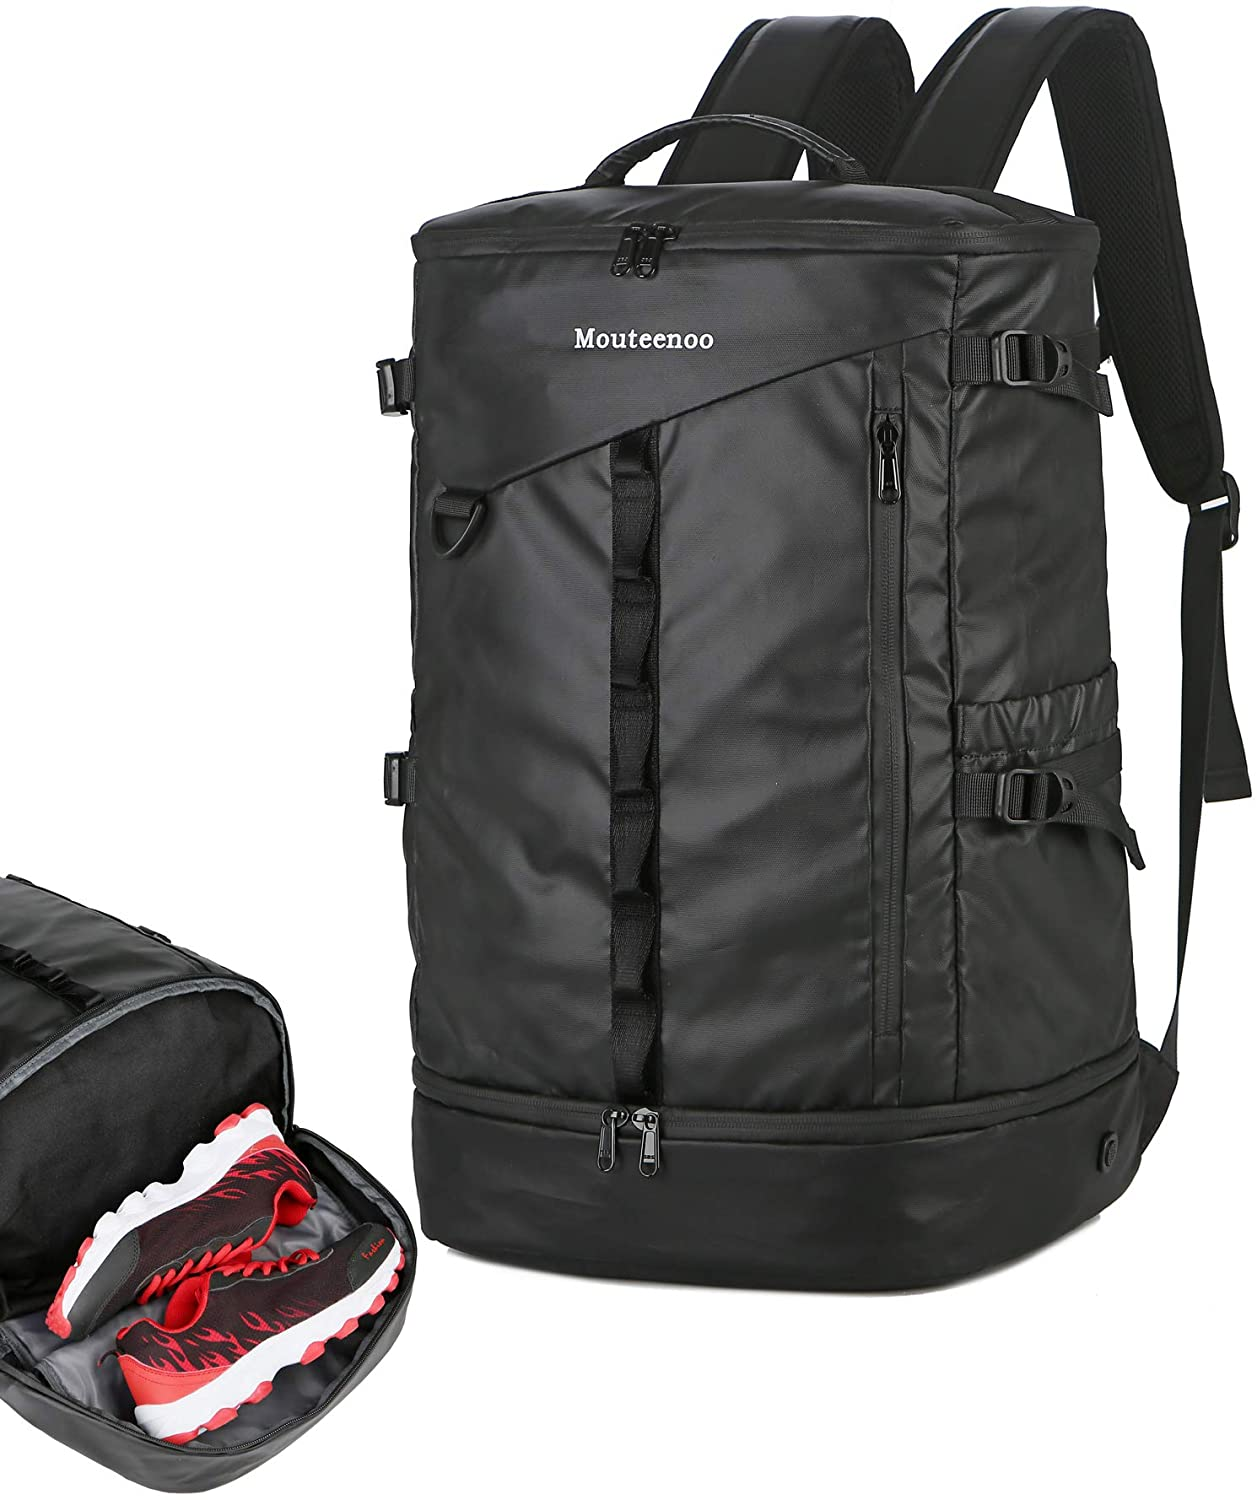 Mouteenoo Travel Backpack with Shoes Sports Gym 2021new shipping free shipping Compartment for Directly managed store